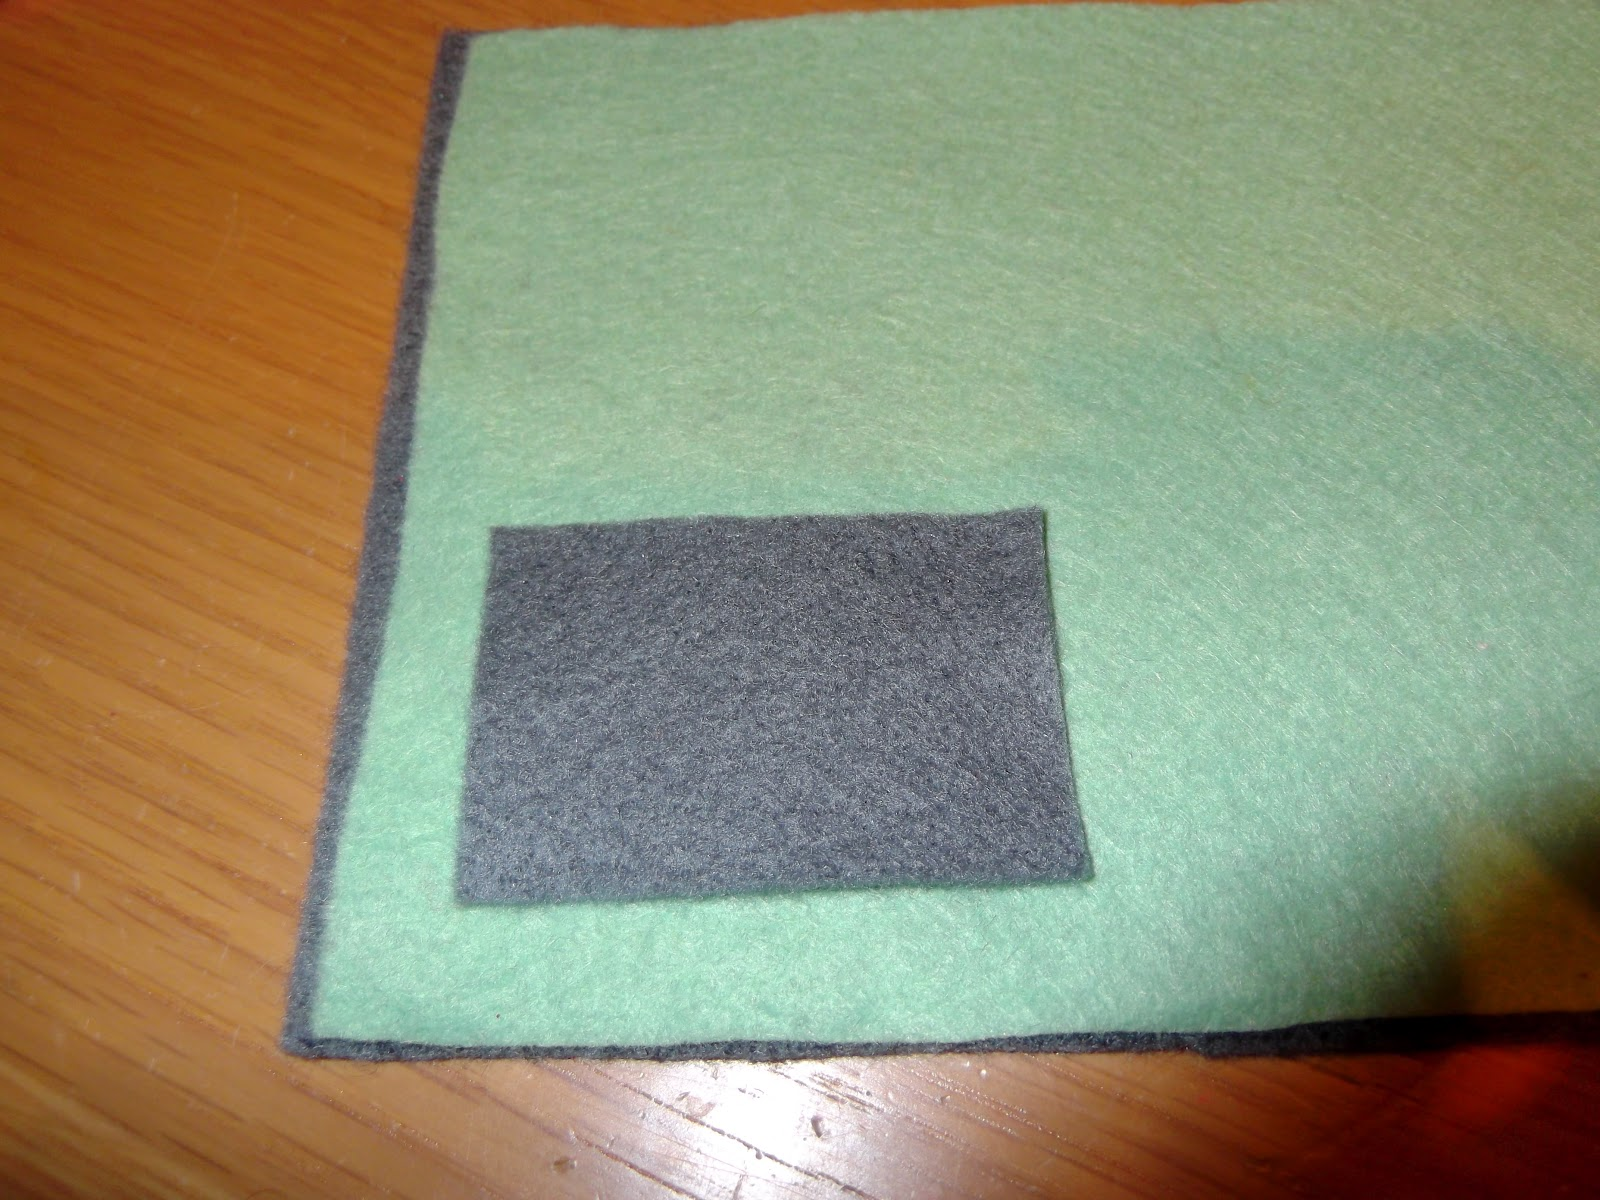 Made By (A)me: Felt Needle Case